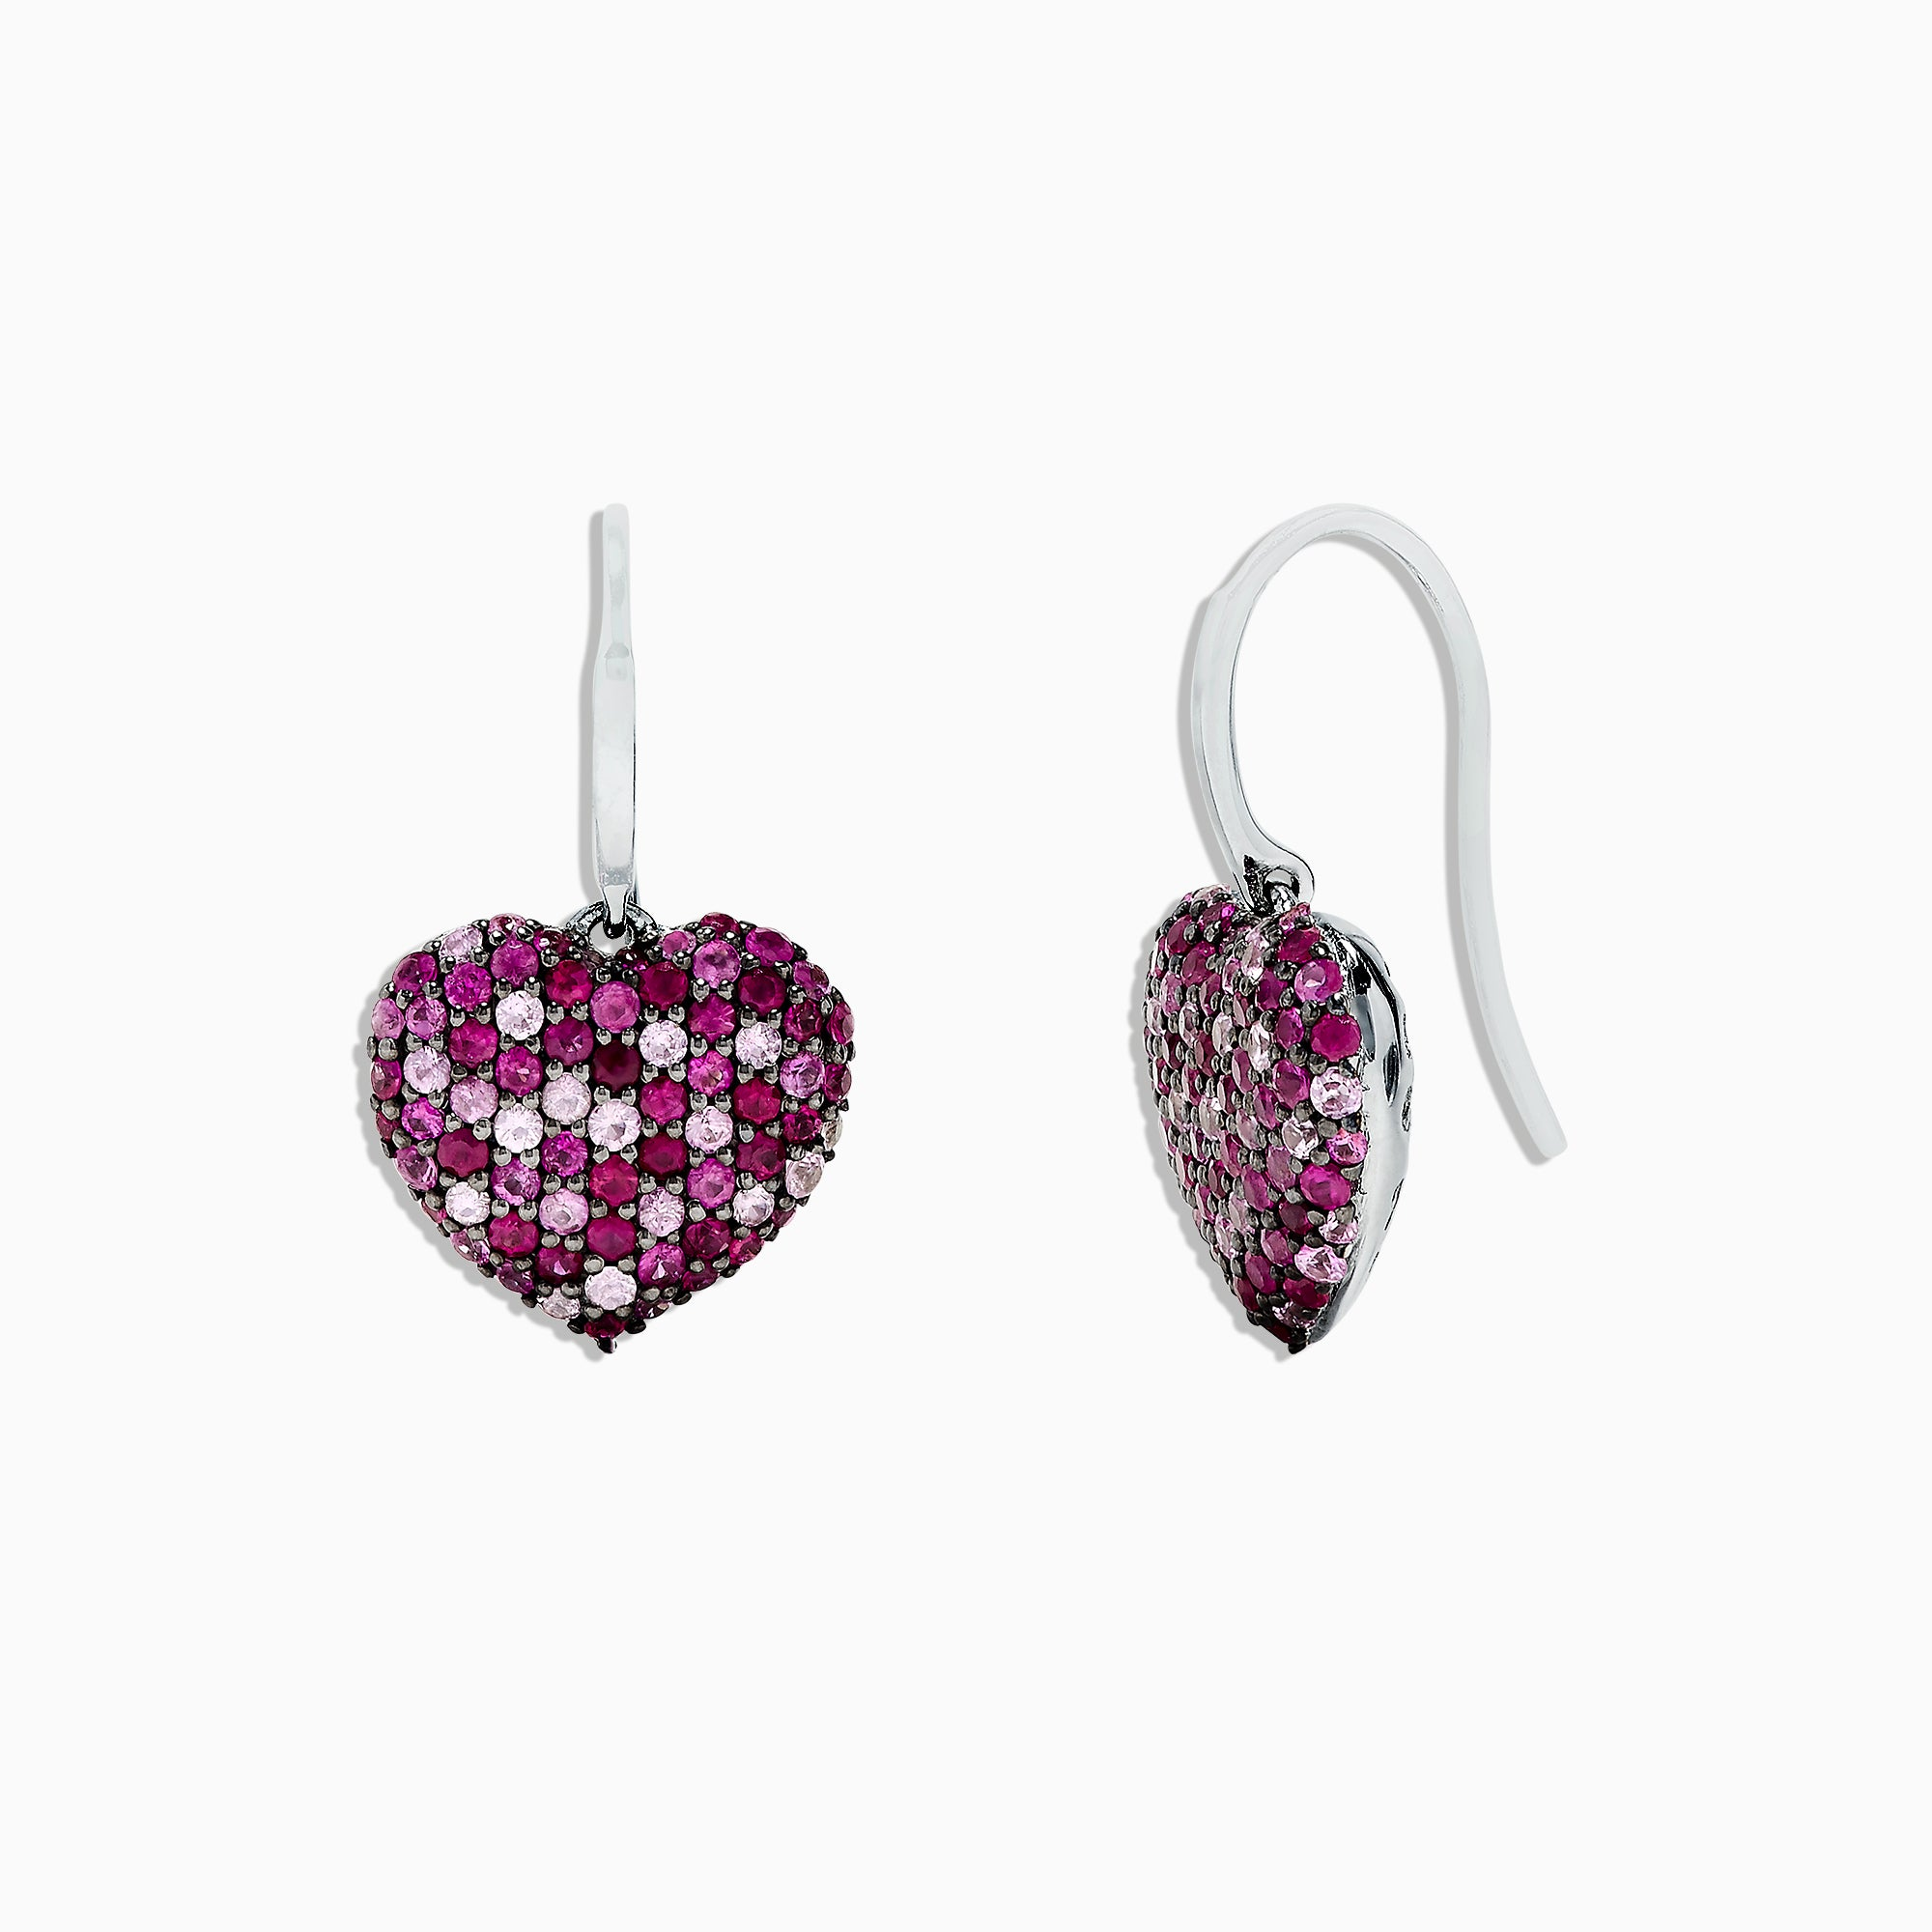 Effy 925 Sterling Silver Pink Sapphire Splash Heart Earrings, 2.30 TCW